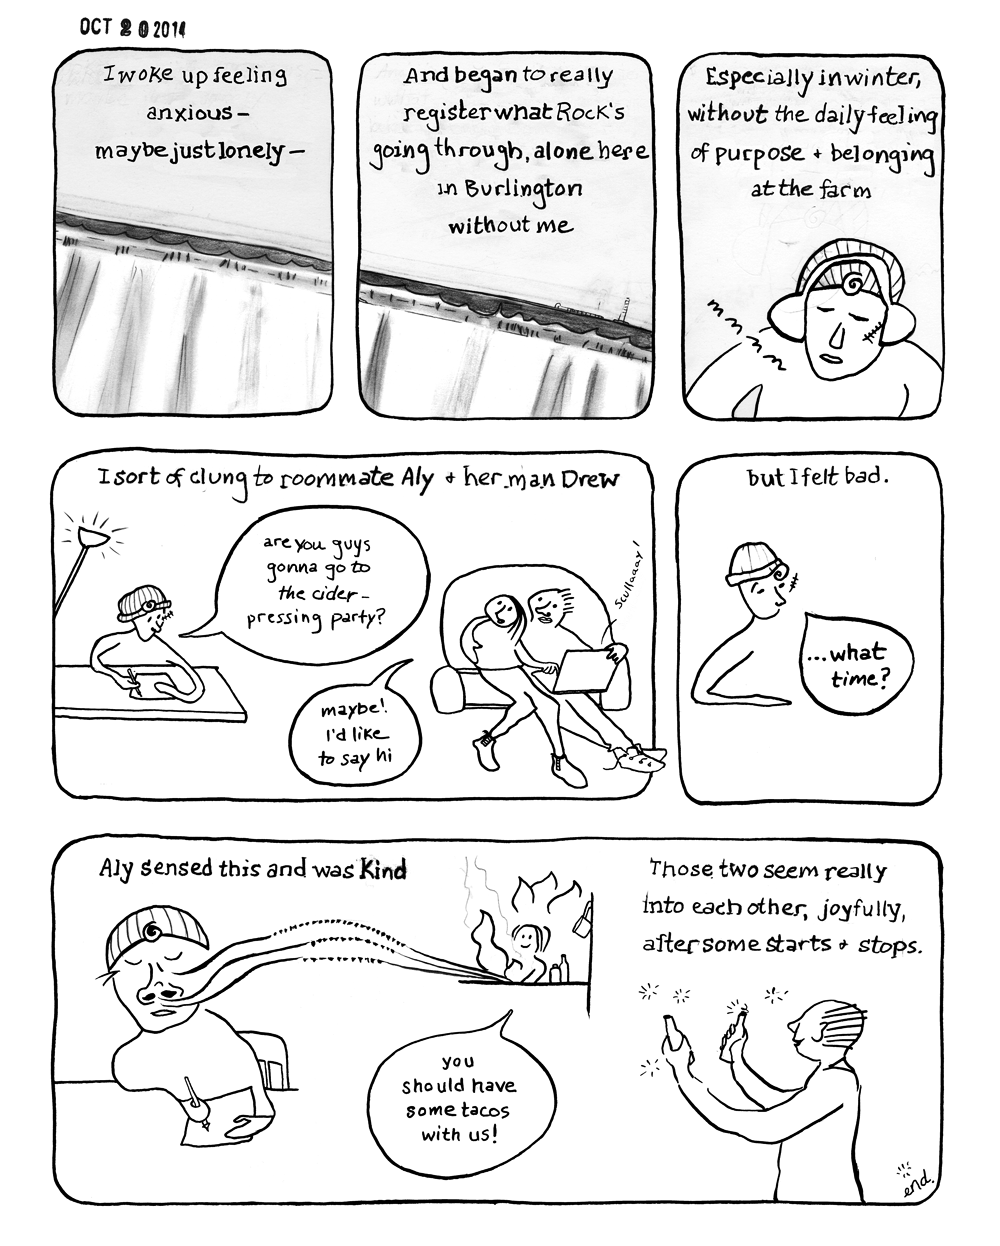 Diary Comic ~ October 20, 2014 Late fall loneliness, after I dropped my partner off at the train station~ I commuted during my last year at the Center for Cartoon Studies, so by and large I was the busy one off doing exciting things. I made a lot of sympathetic noise toward my partner as he struggled through the winter.